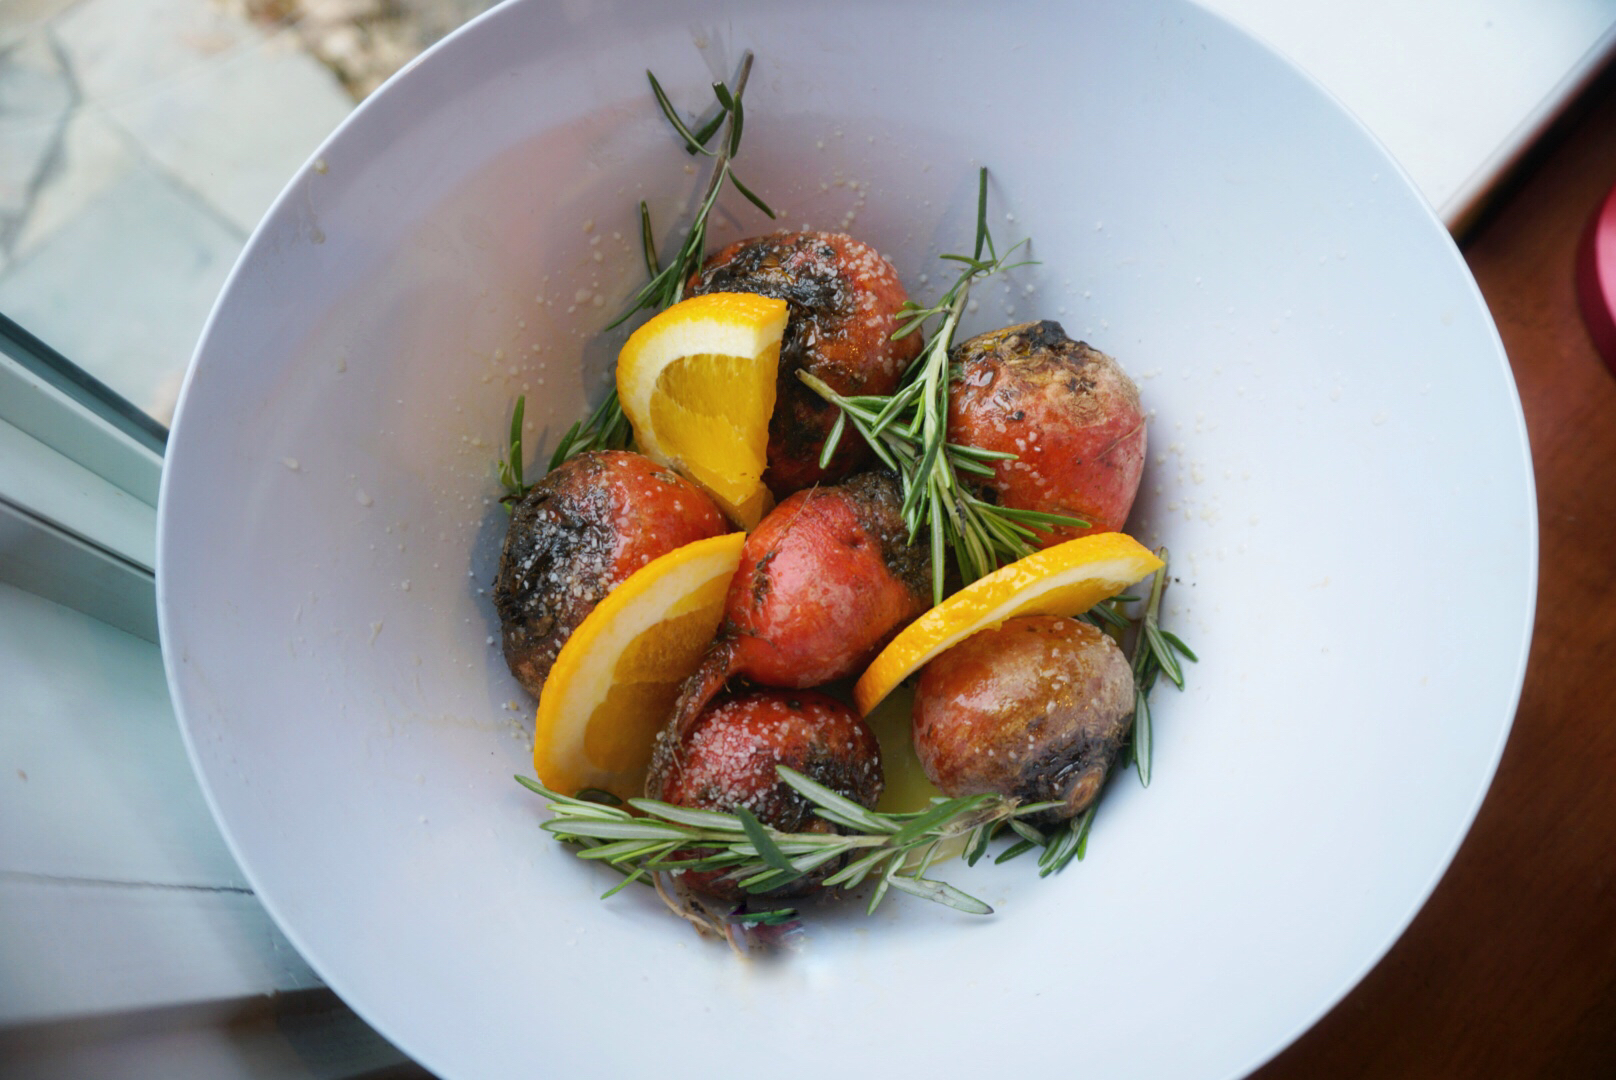 golden beets, oranges, and rosemary - about to get roasted in the coals of a wood fire.